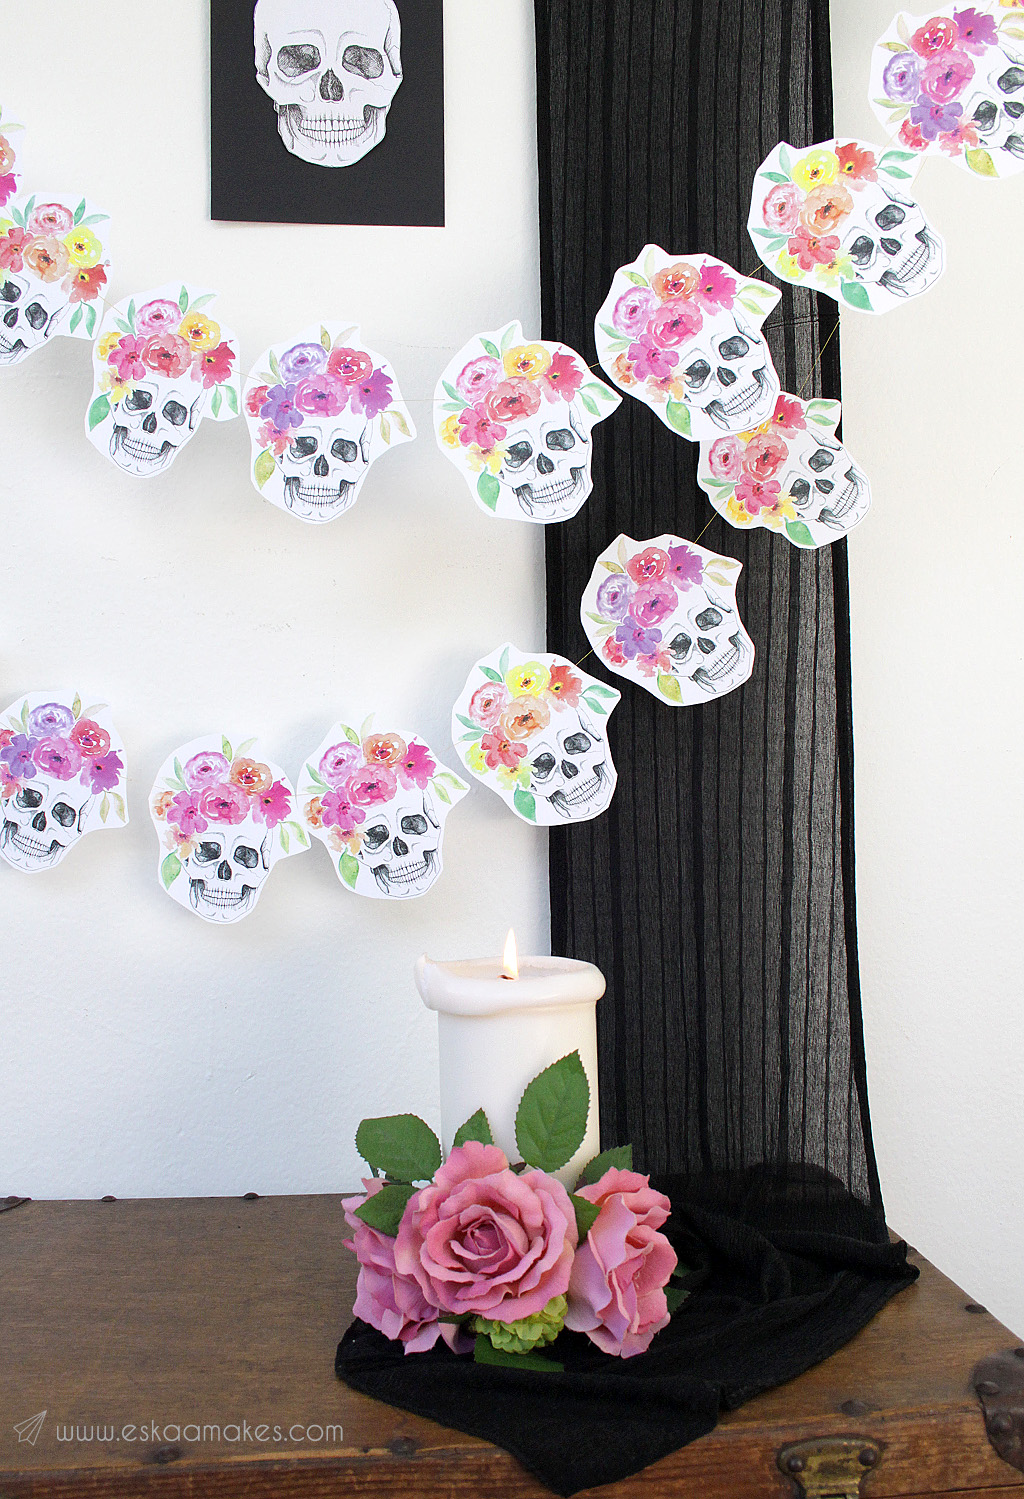 diy-flower-crown-skull-garland-1